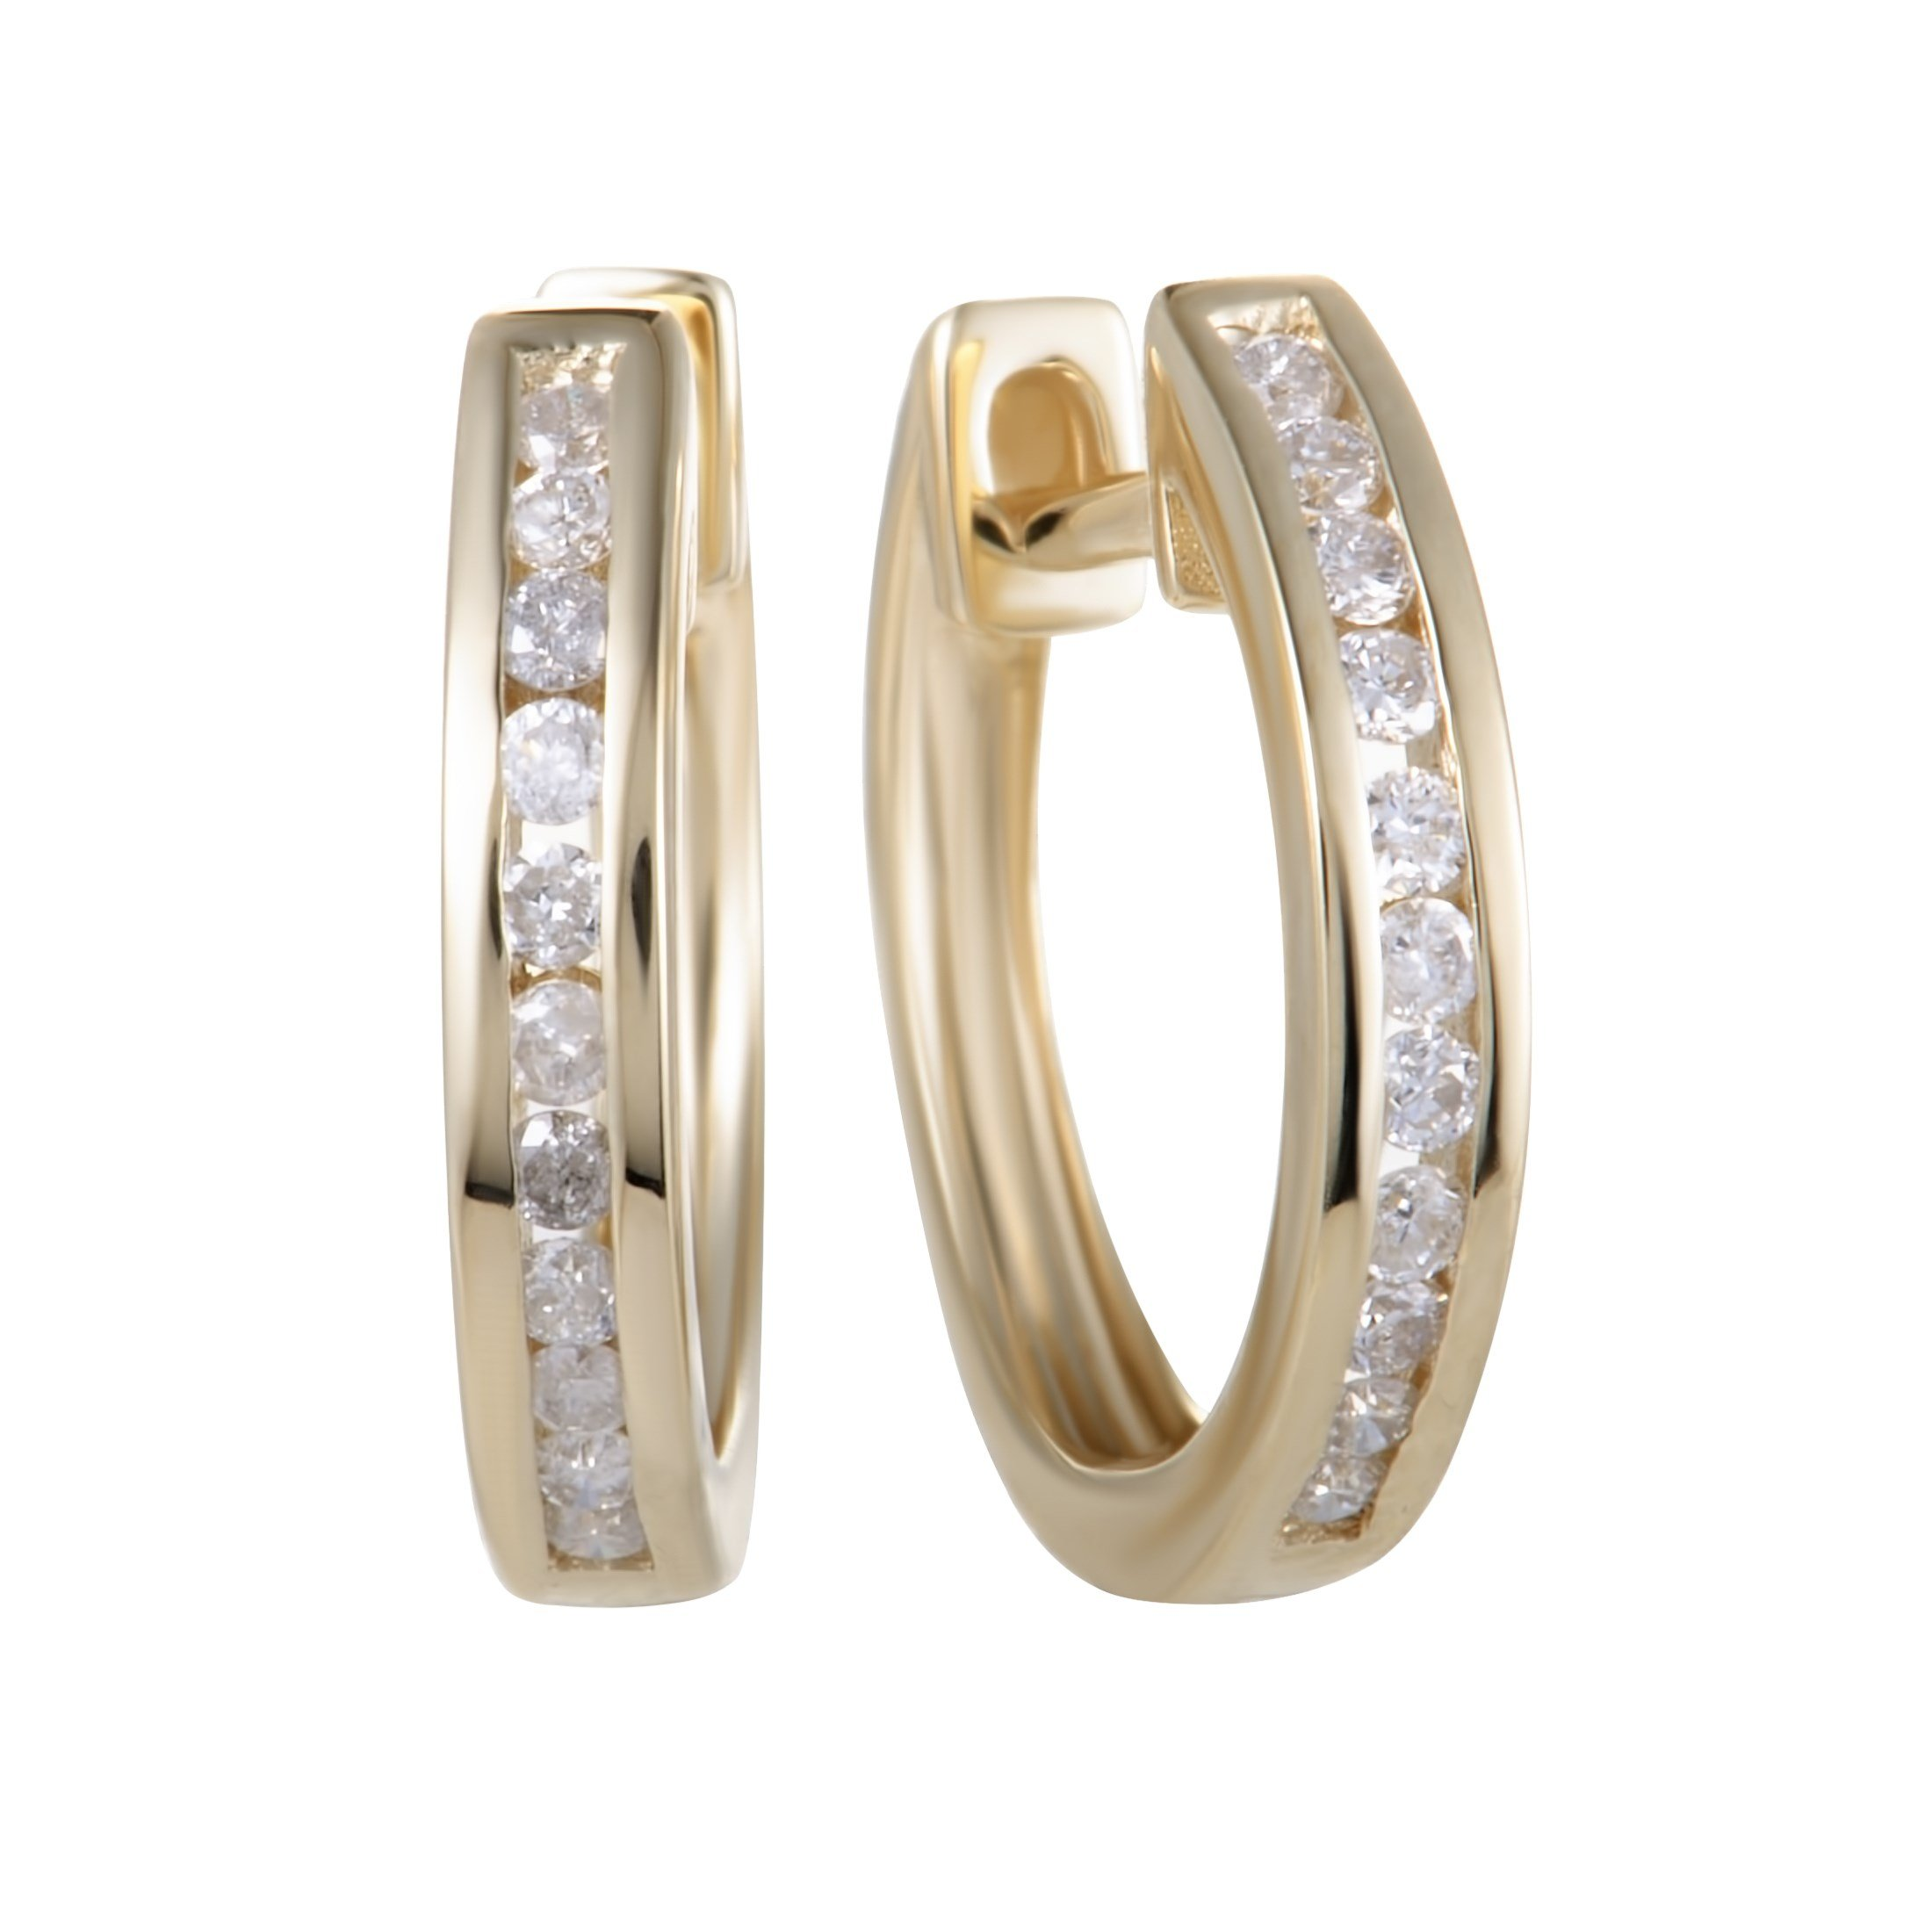 0.25 Carat (ctw) Round Diamond Hoop Earrings; 1/4 CT White Diamonds (G Color, SI1-SI2 Clarity) in 0.5'' 14K Yellow Gold Hoops